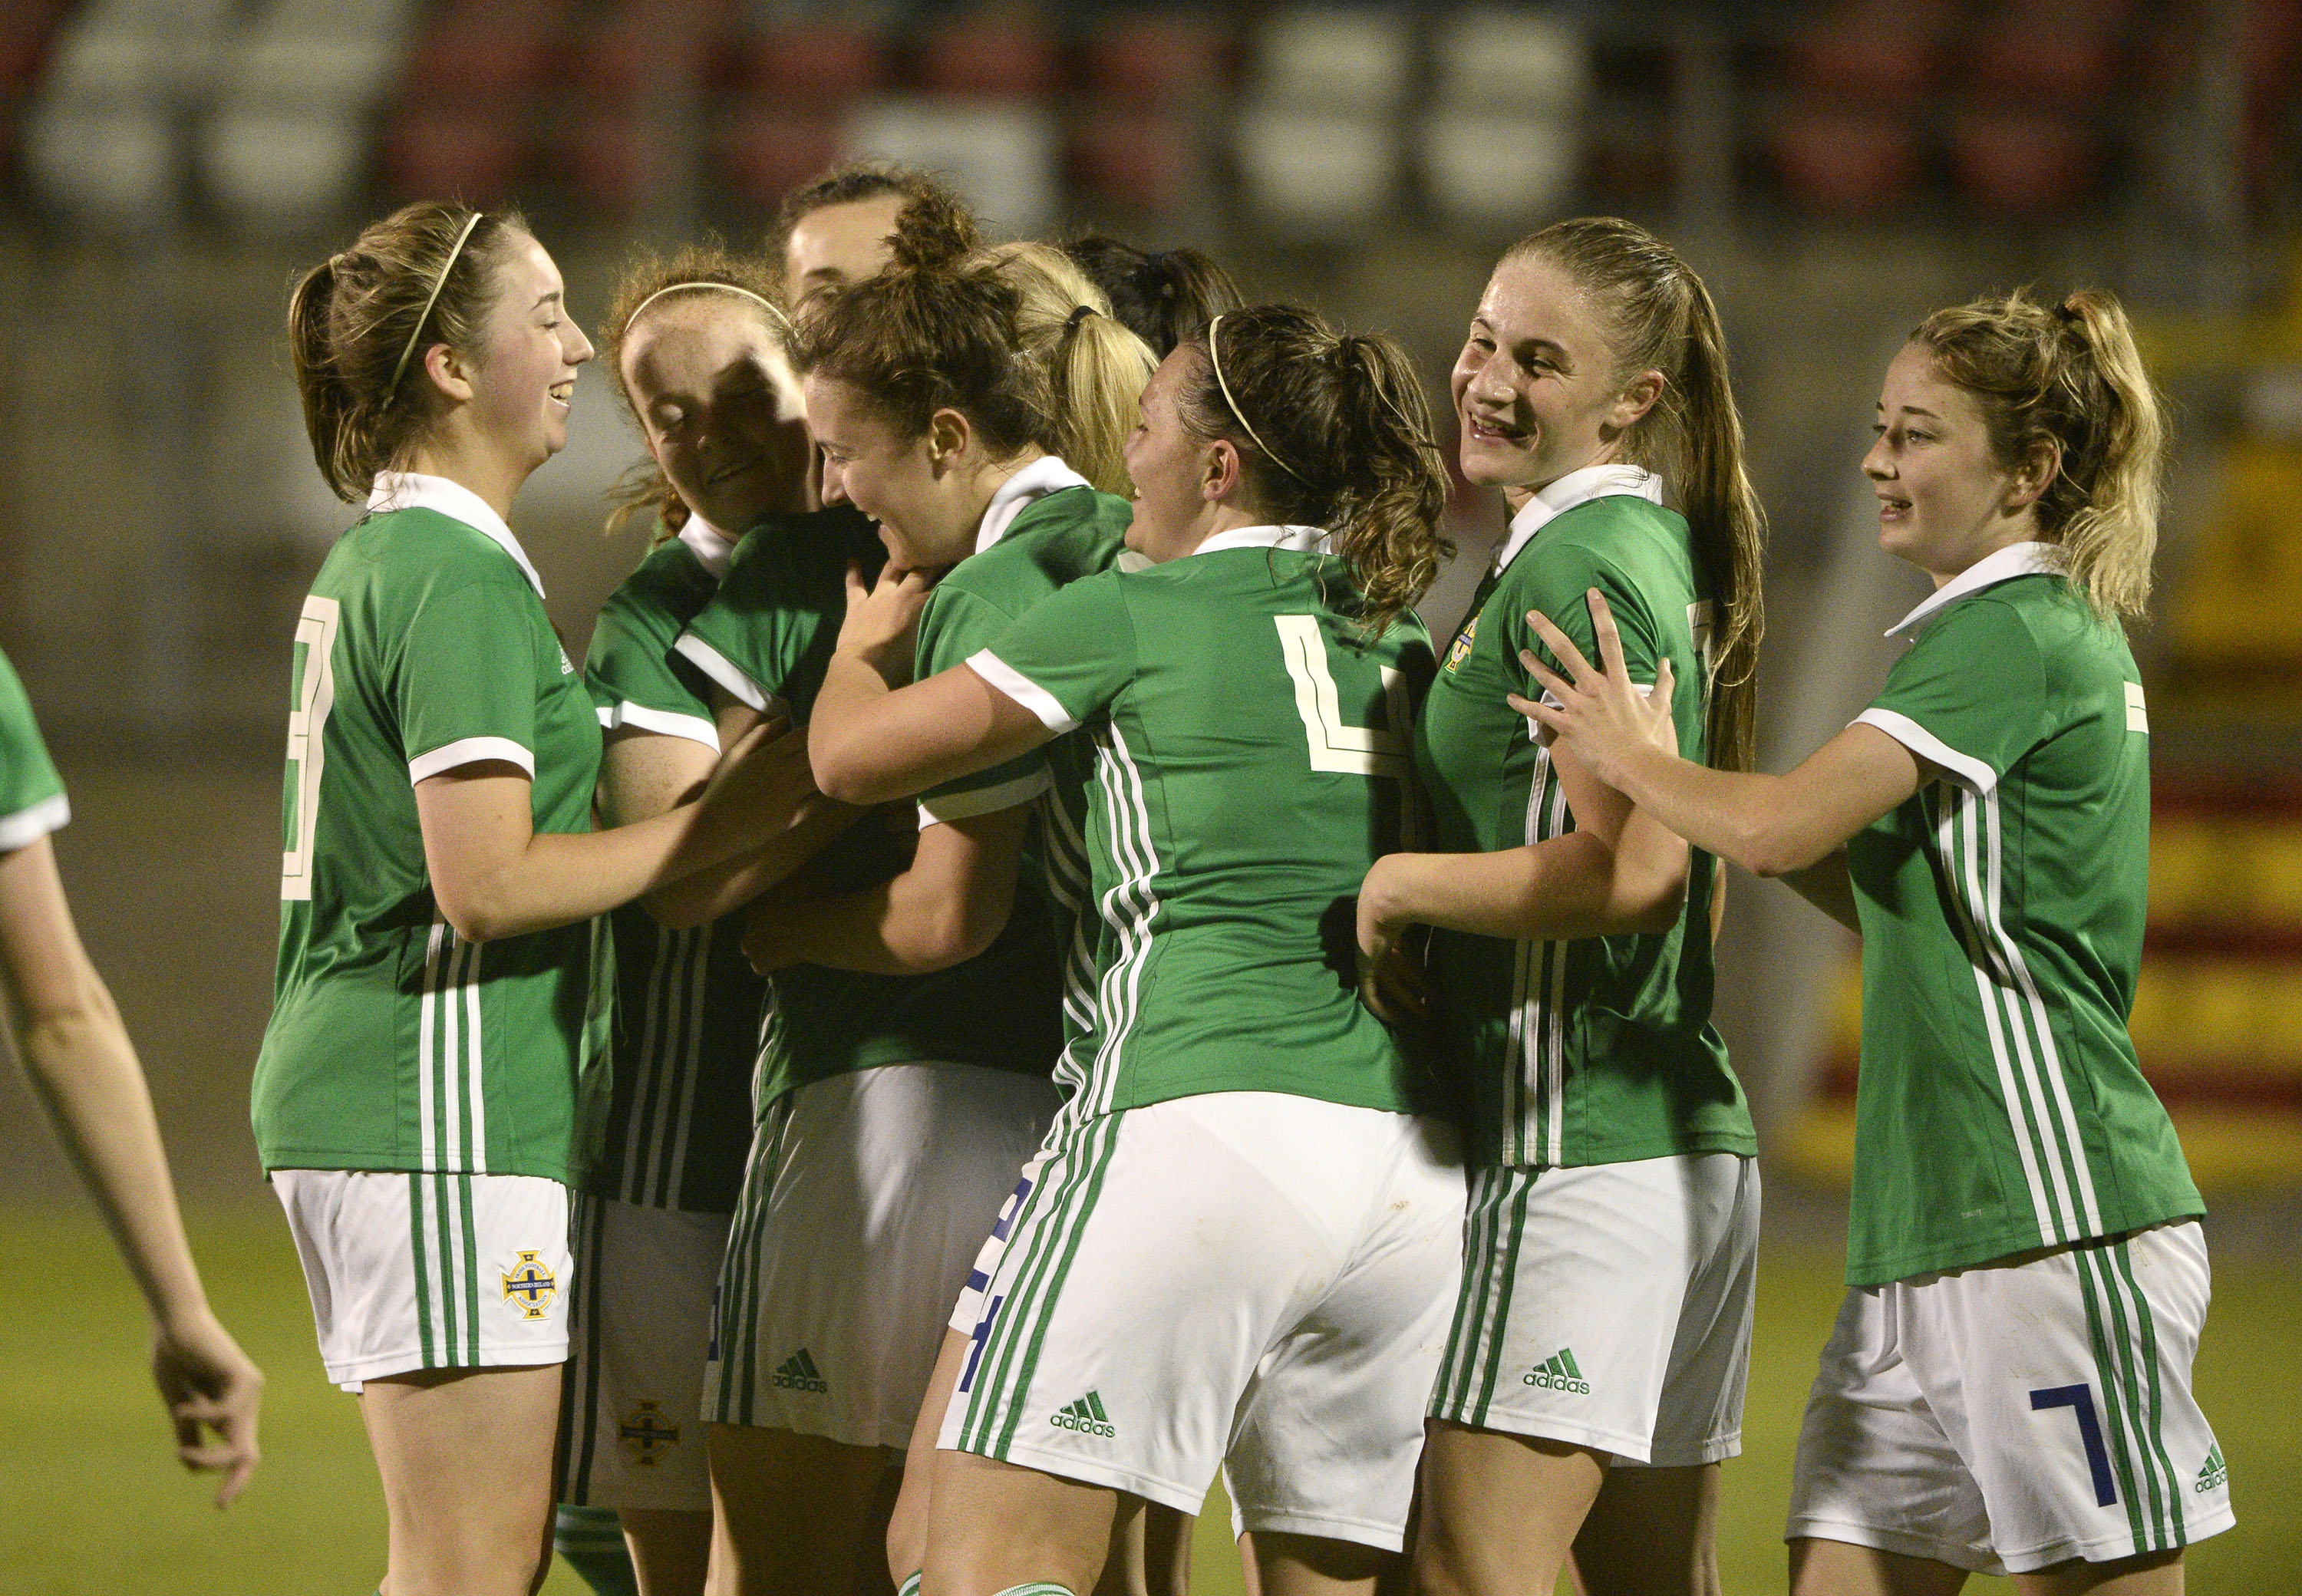 db3894c3a Northern Ireland WU19s and WU17s face tough elite ro...